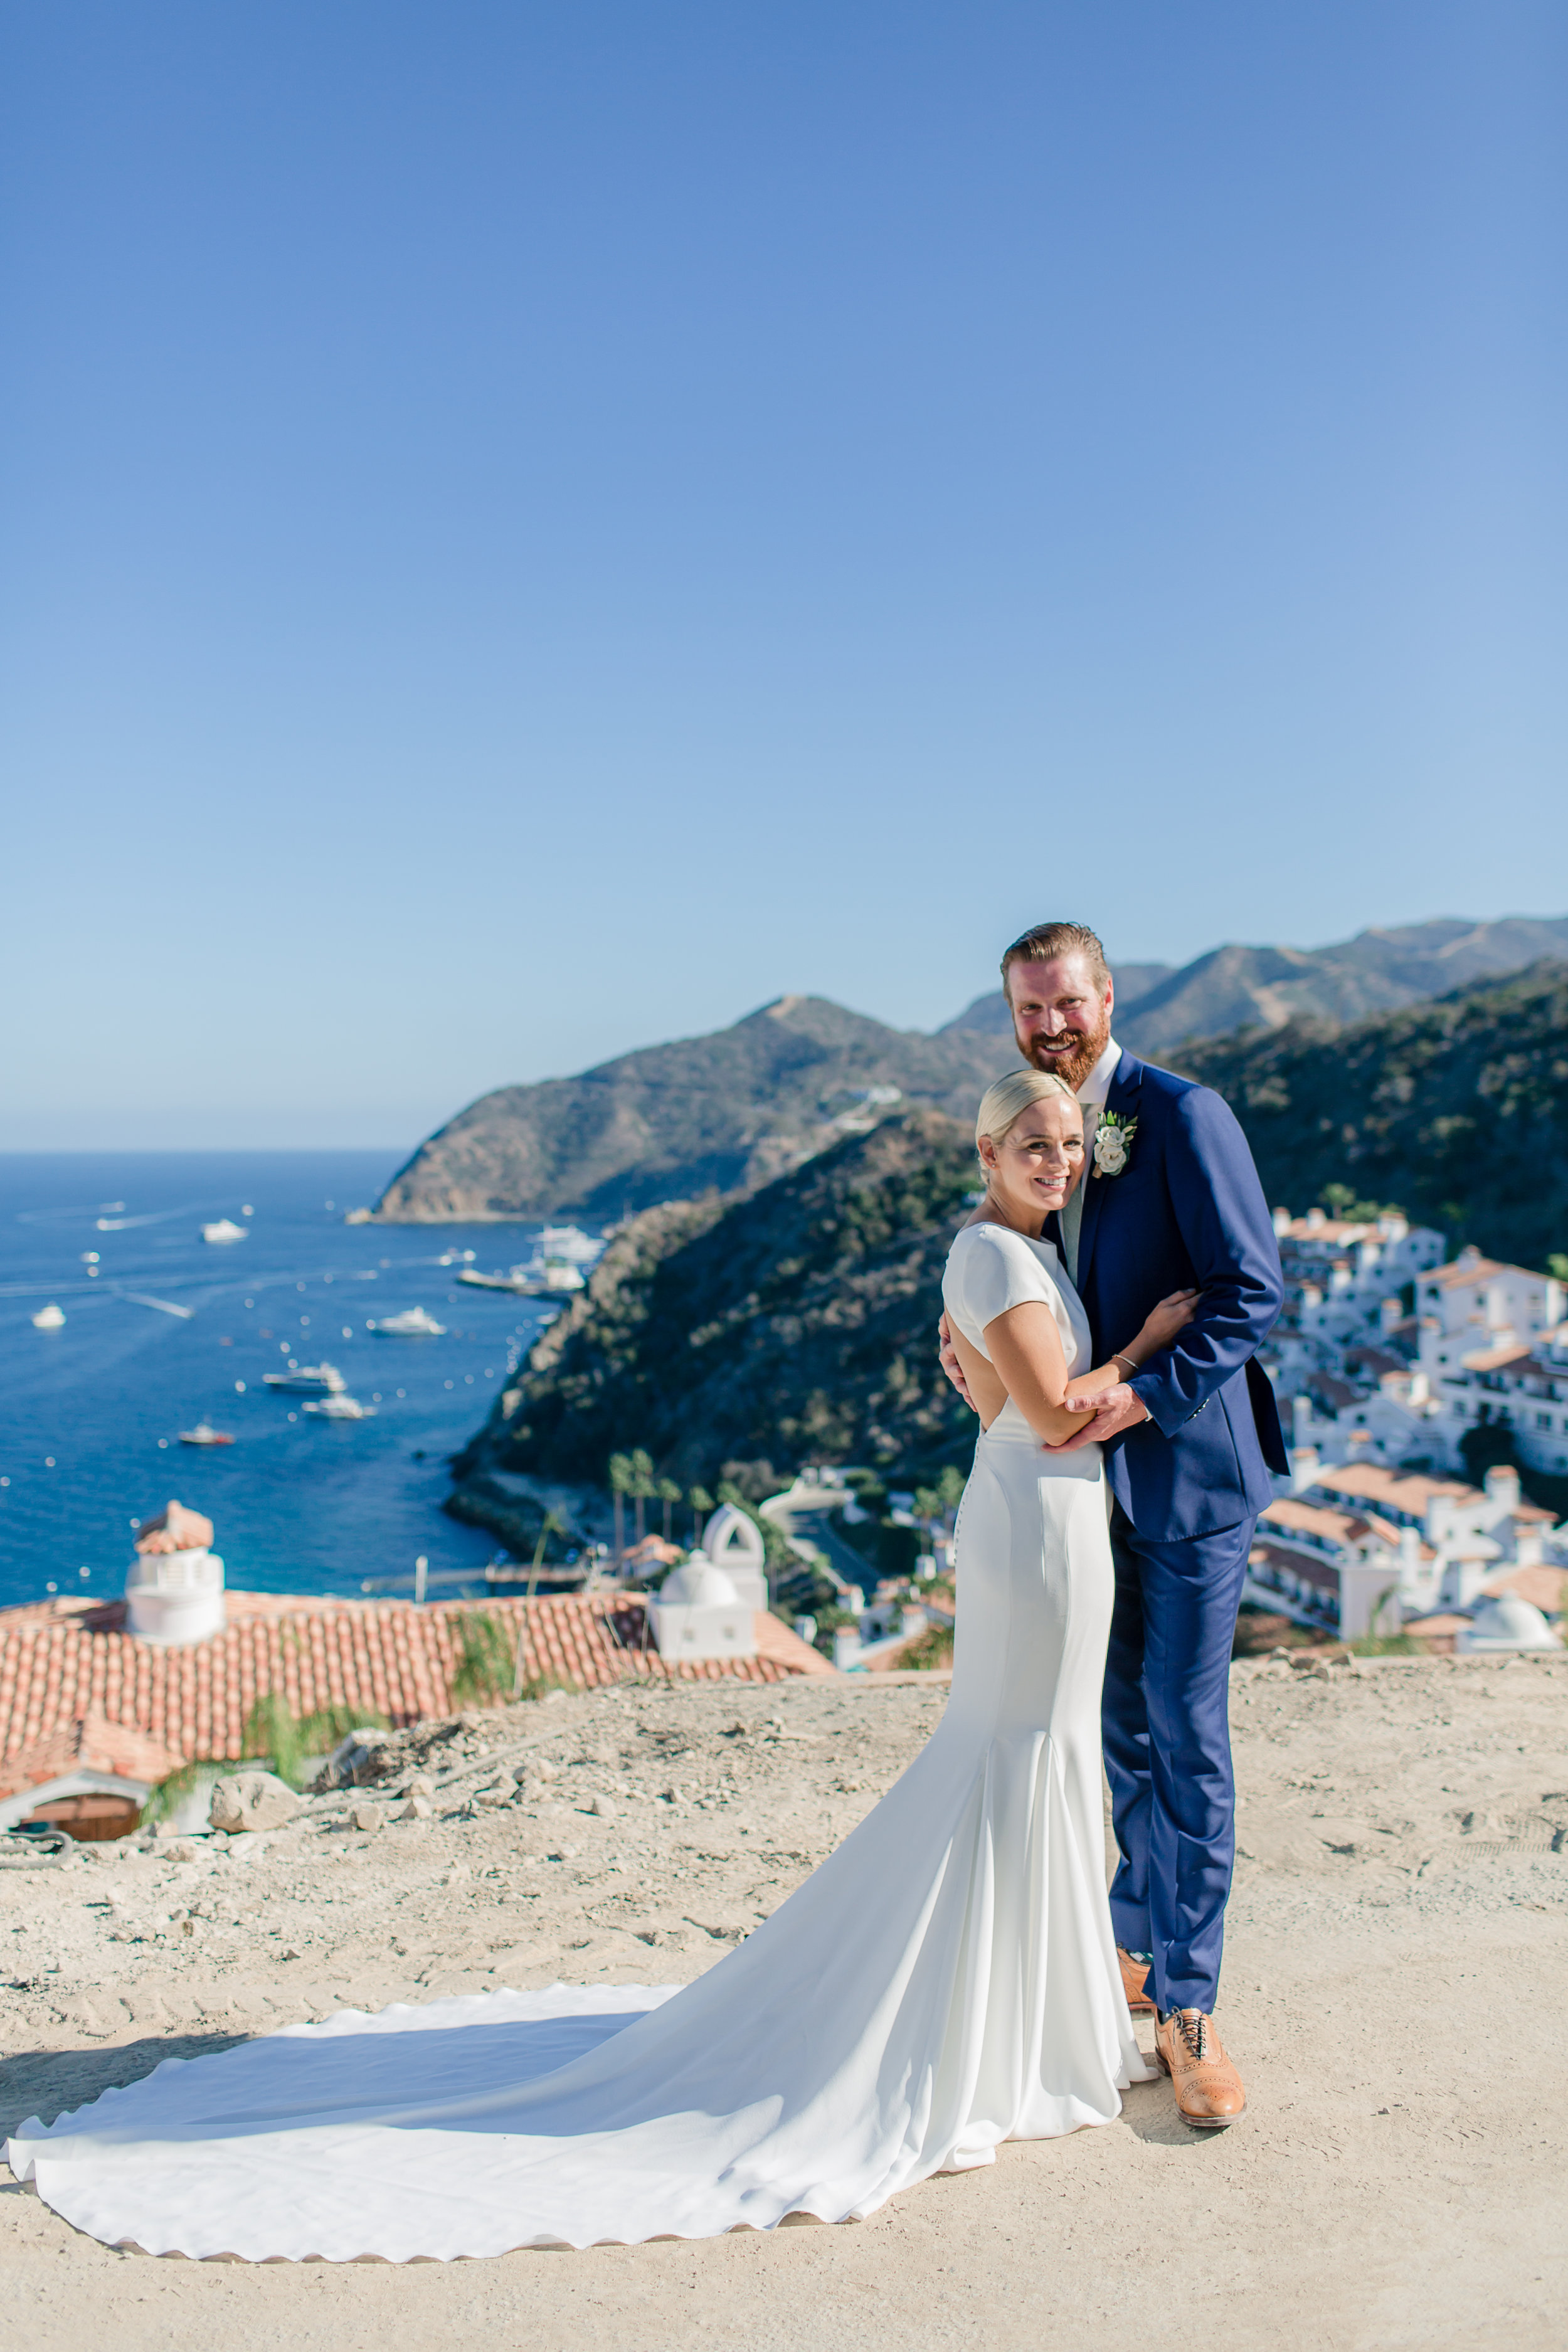 Happy couple vacations in Catalina Island after wedding